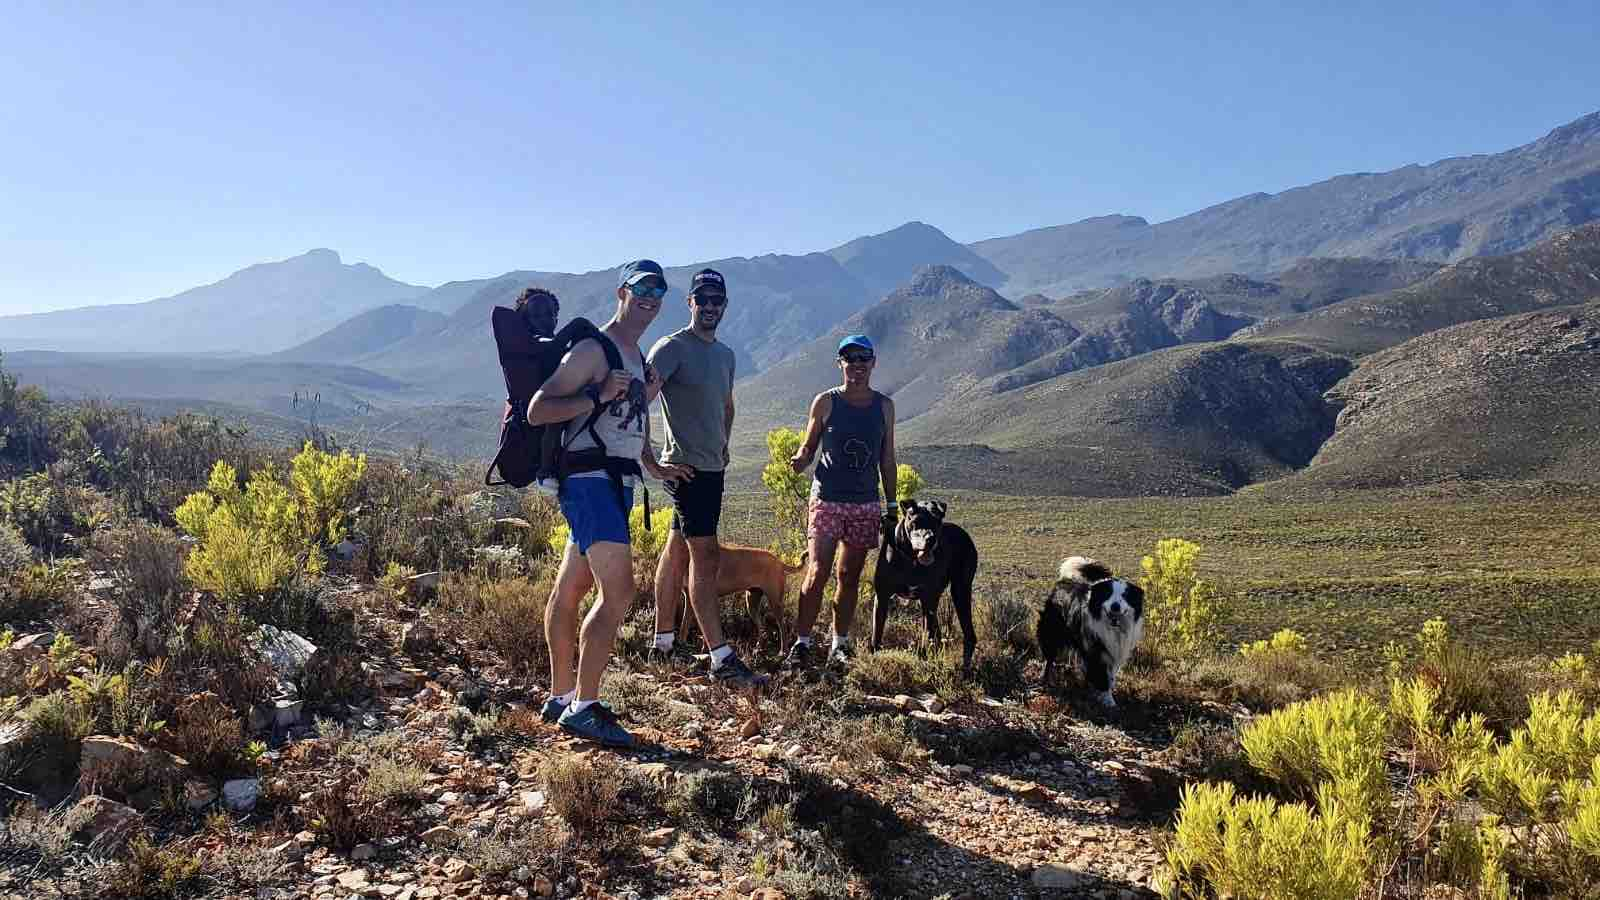 Hiking on Starry Starry Night on route 62 Montagu